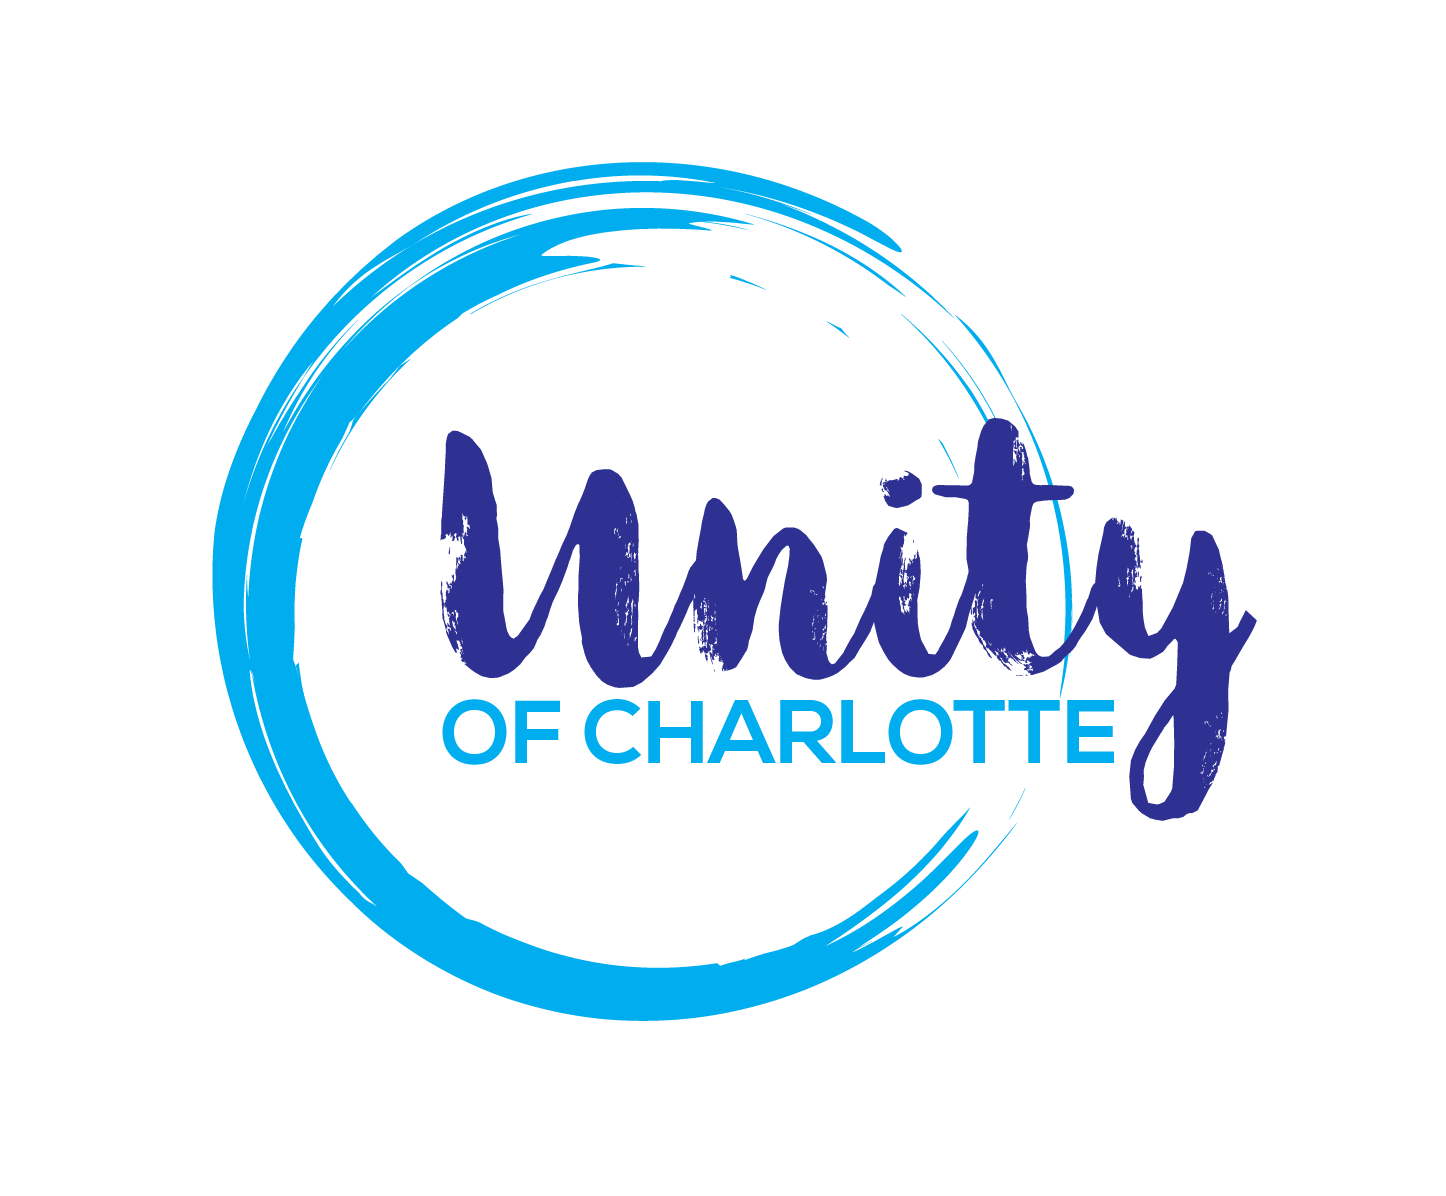 Unity of Charlotte